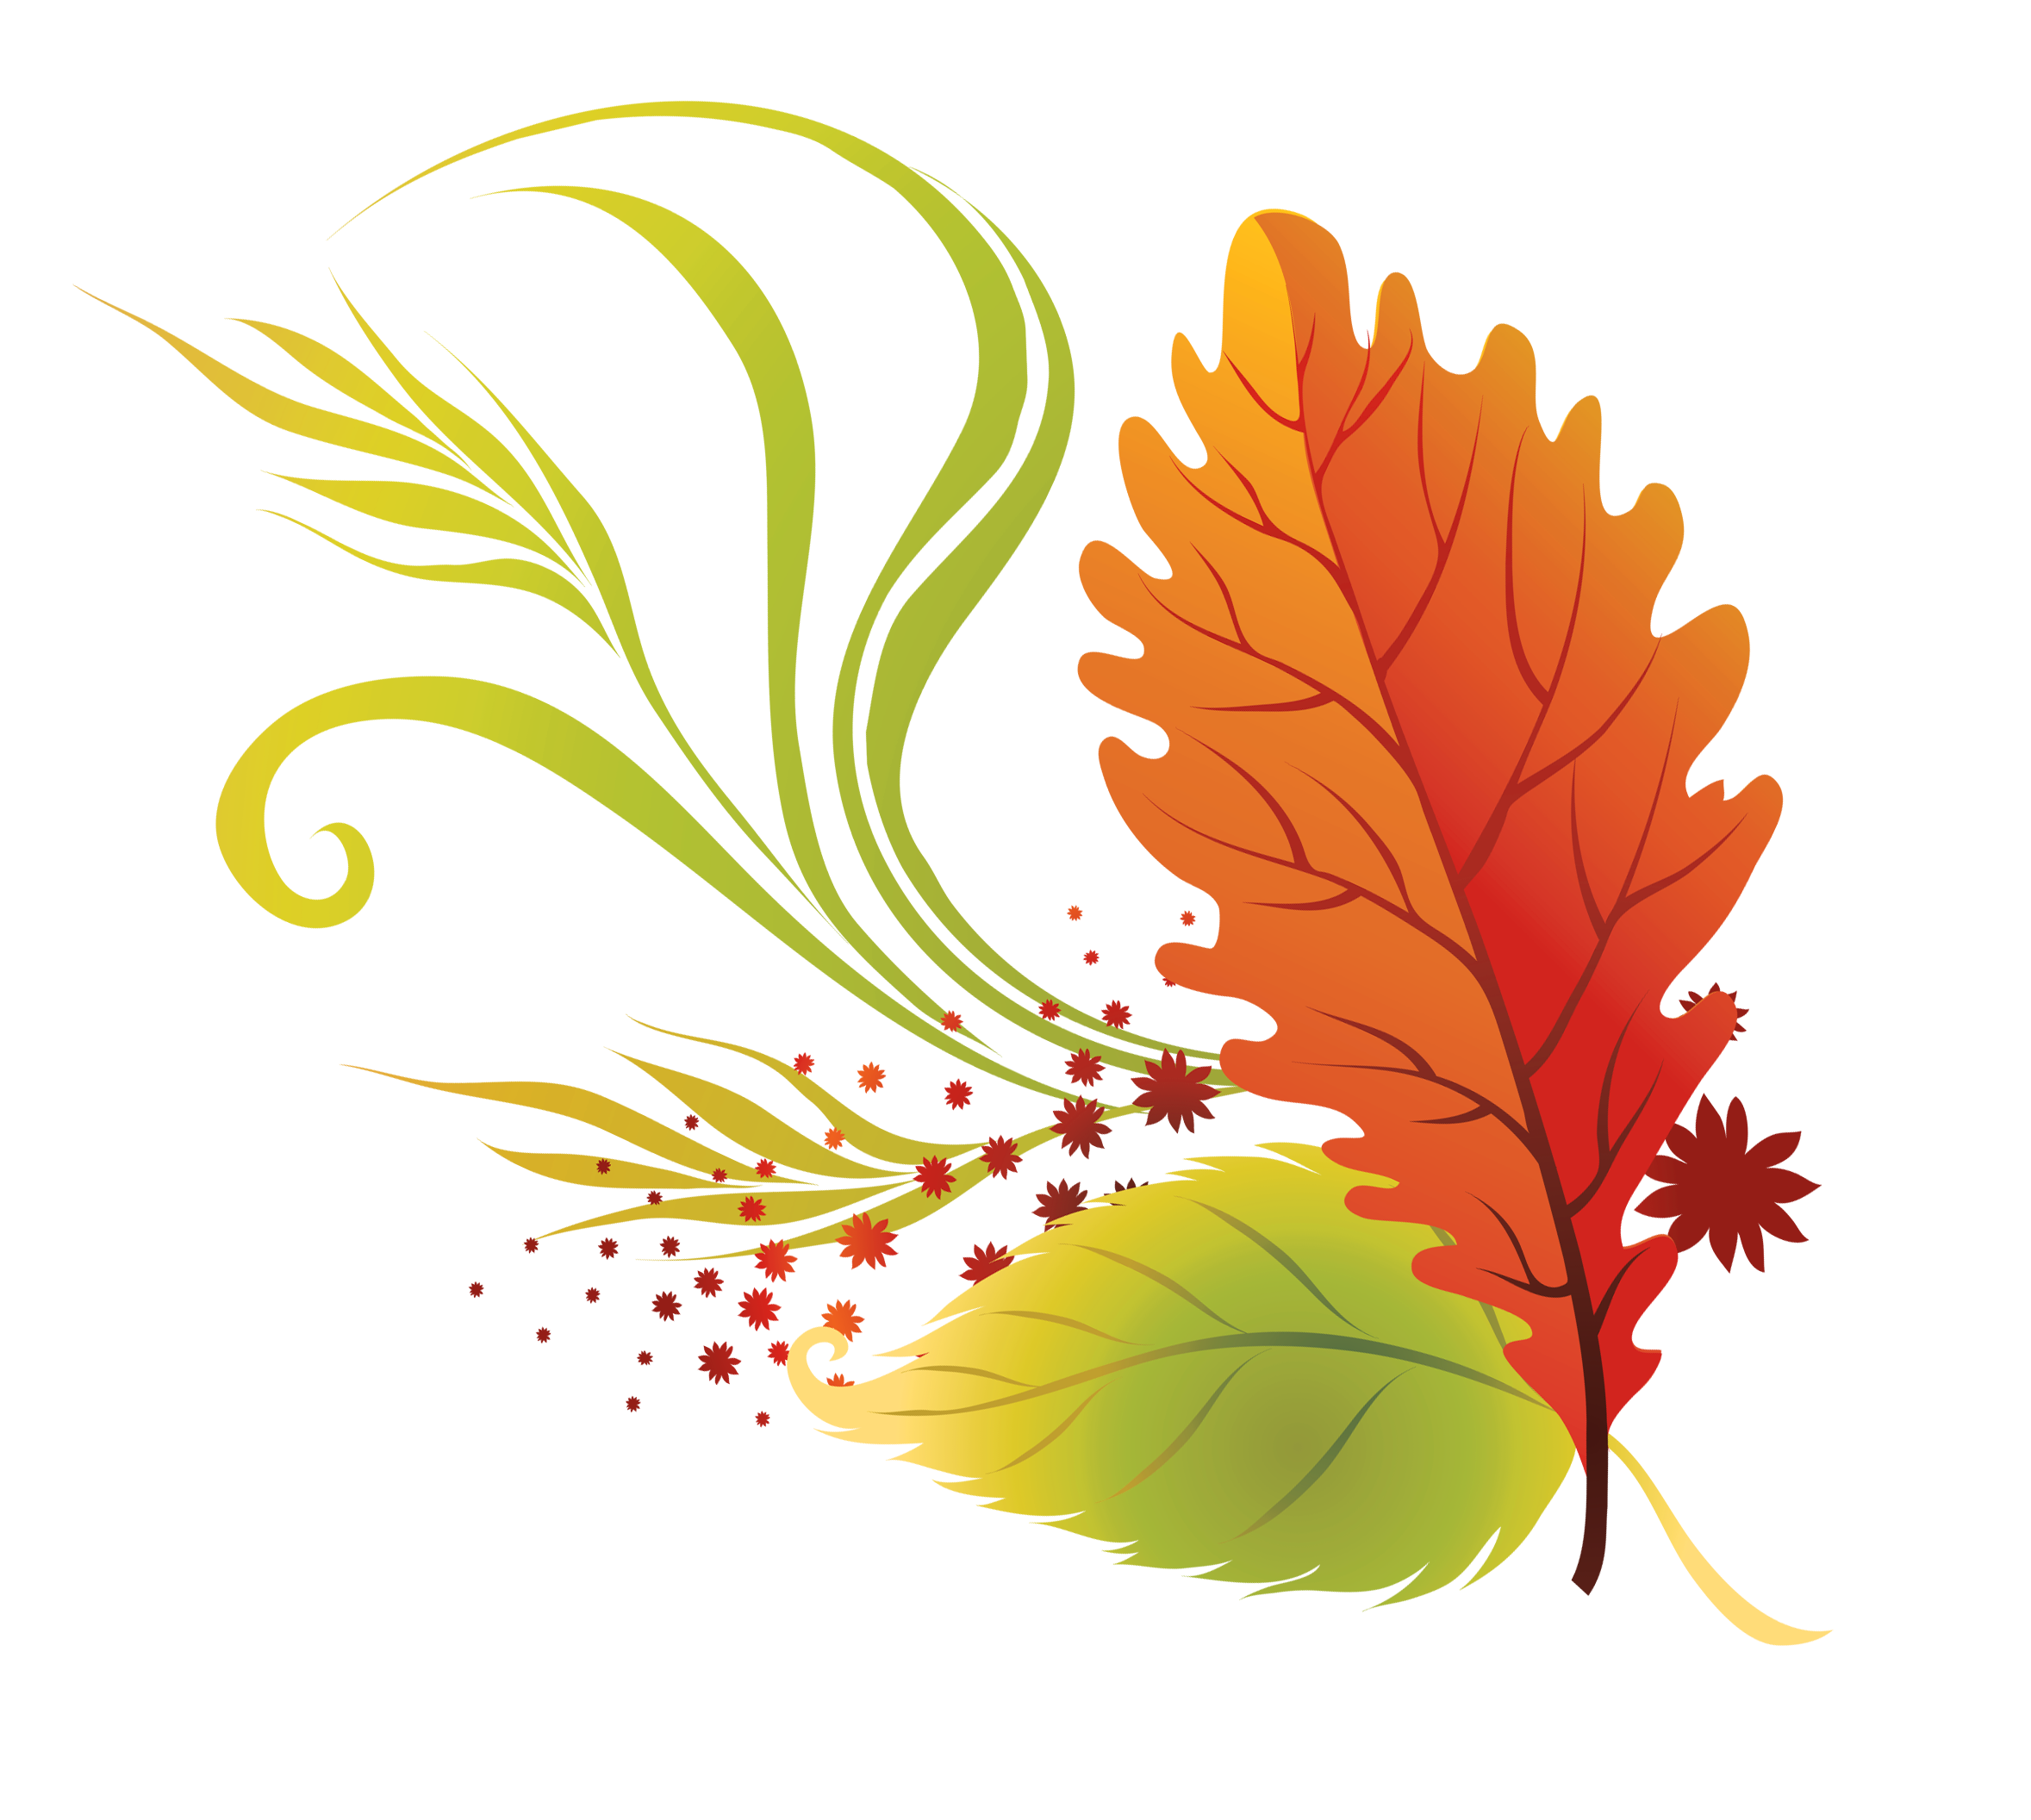 hight resolution of fall leaves clip art beautiful autumn clipart 2 image 10233